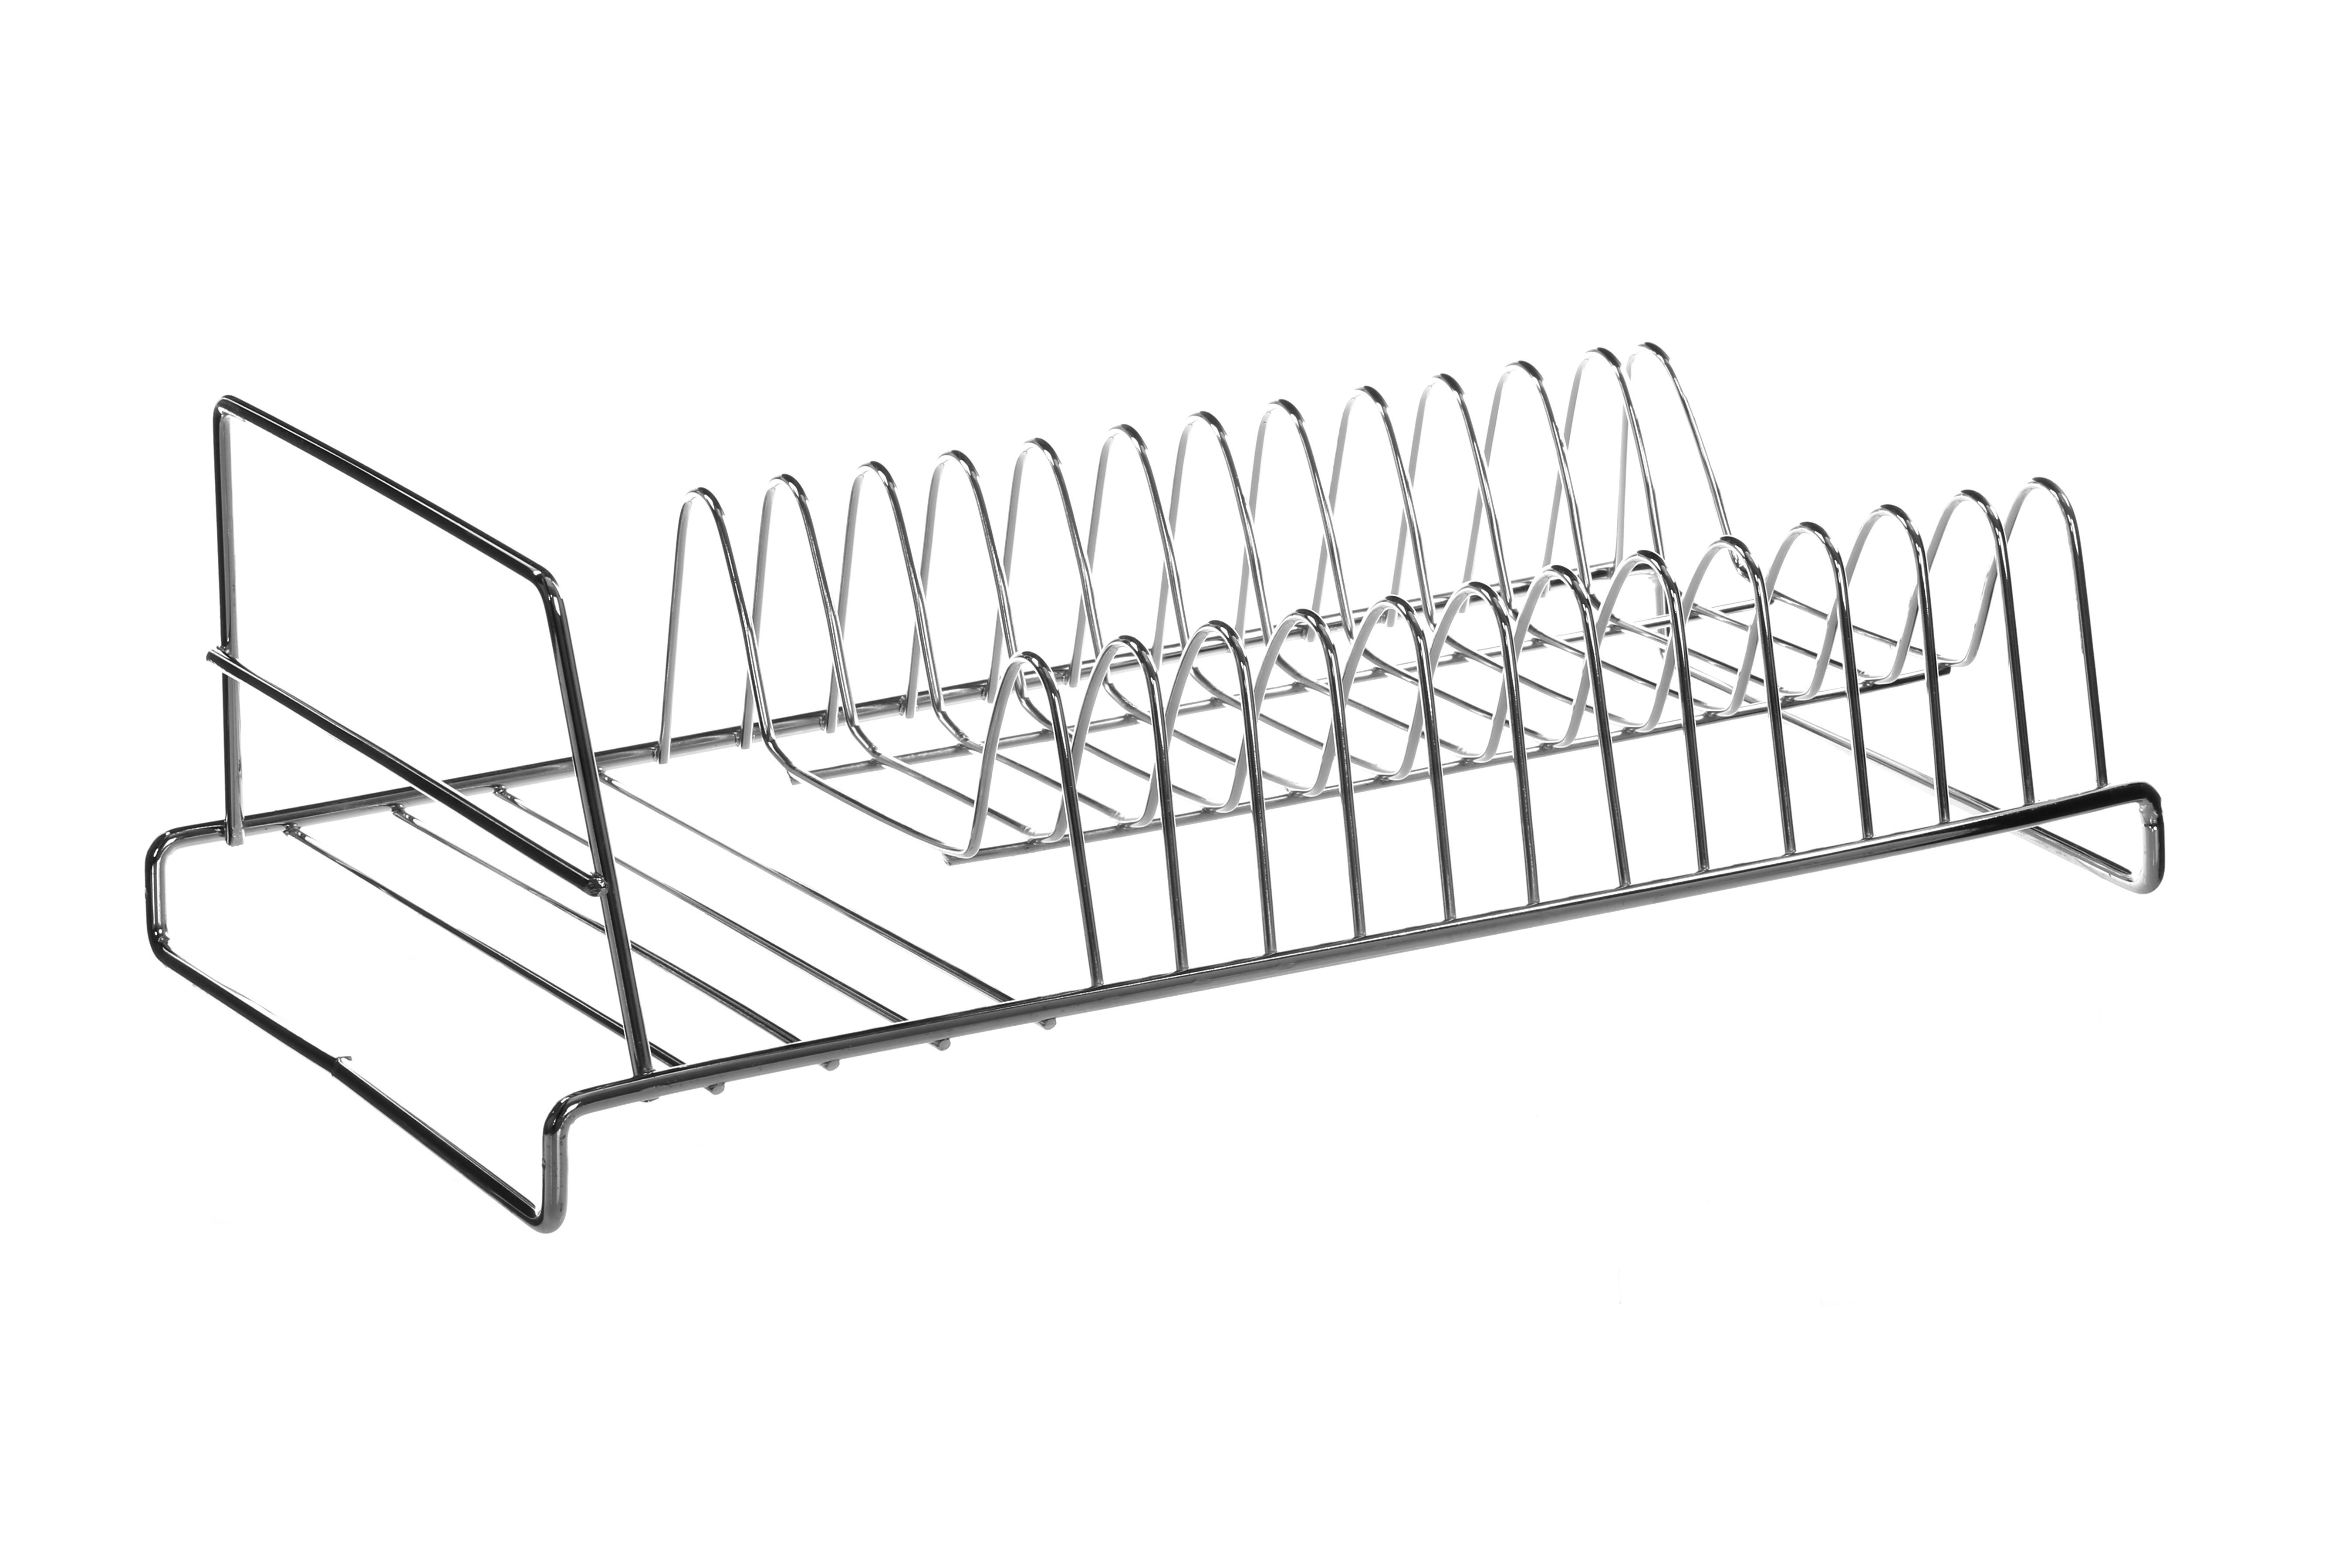 12 Plate Dish Drainer - Chrome